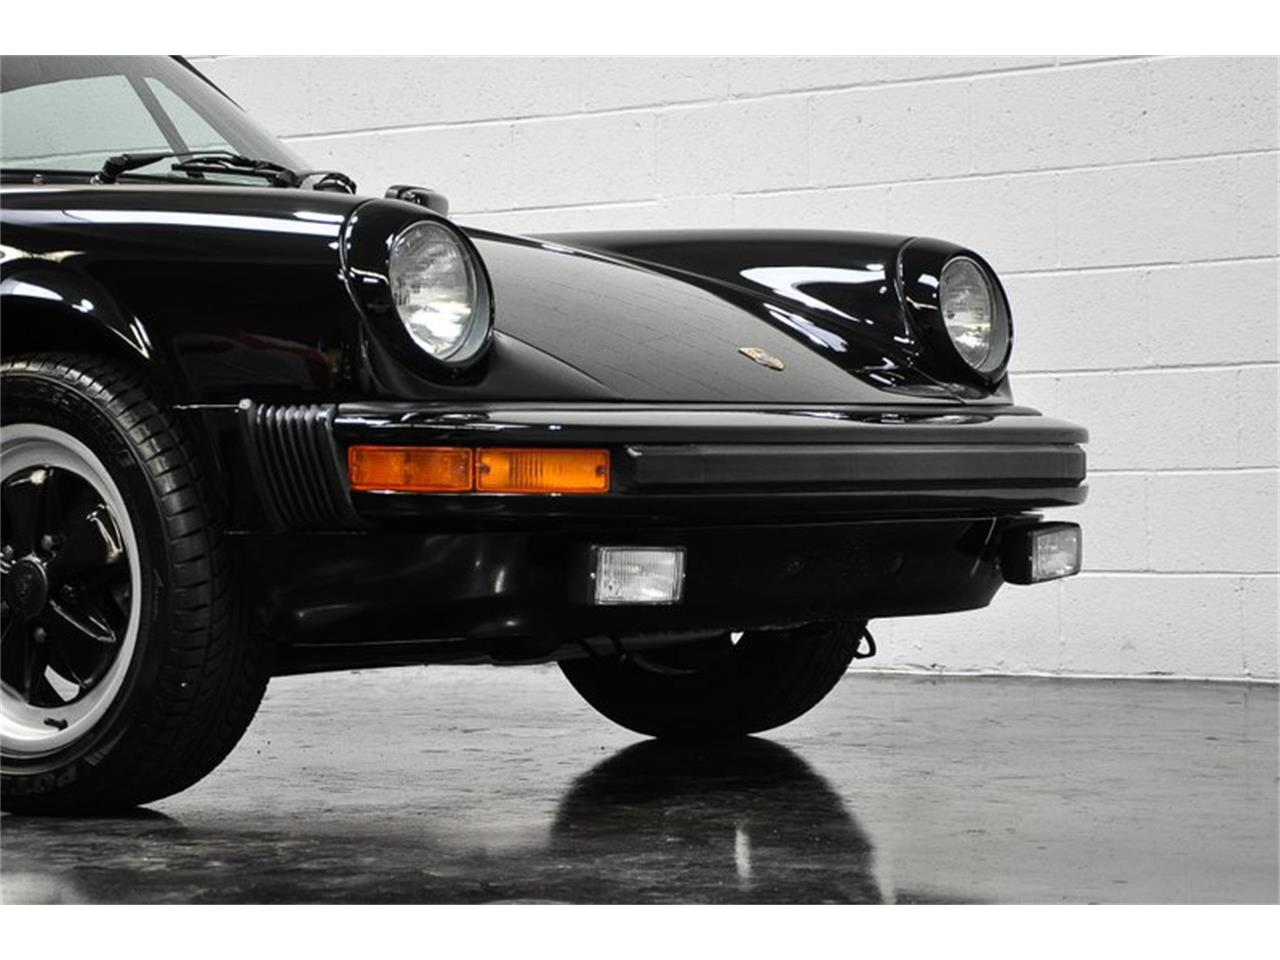 1978 Porsche 911SC for sale in Costa Mesa, CA – photo 12